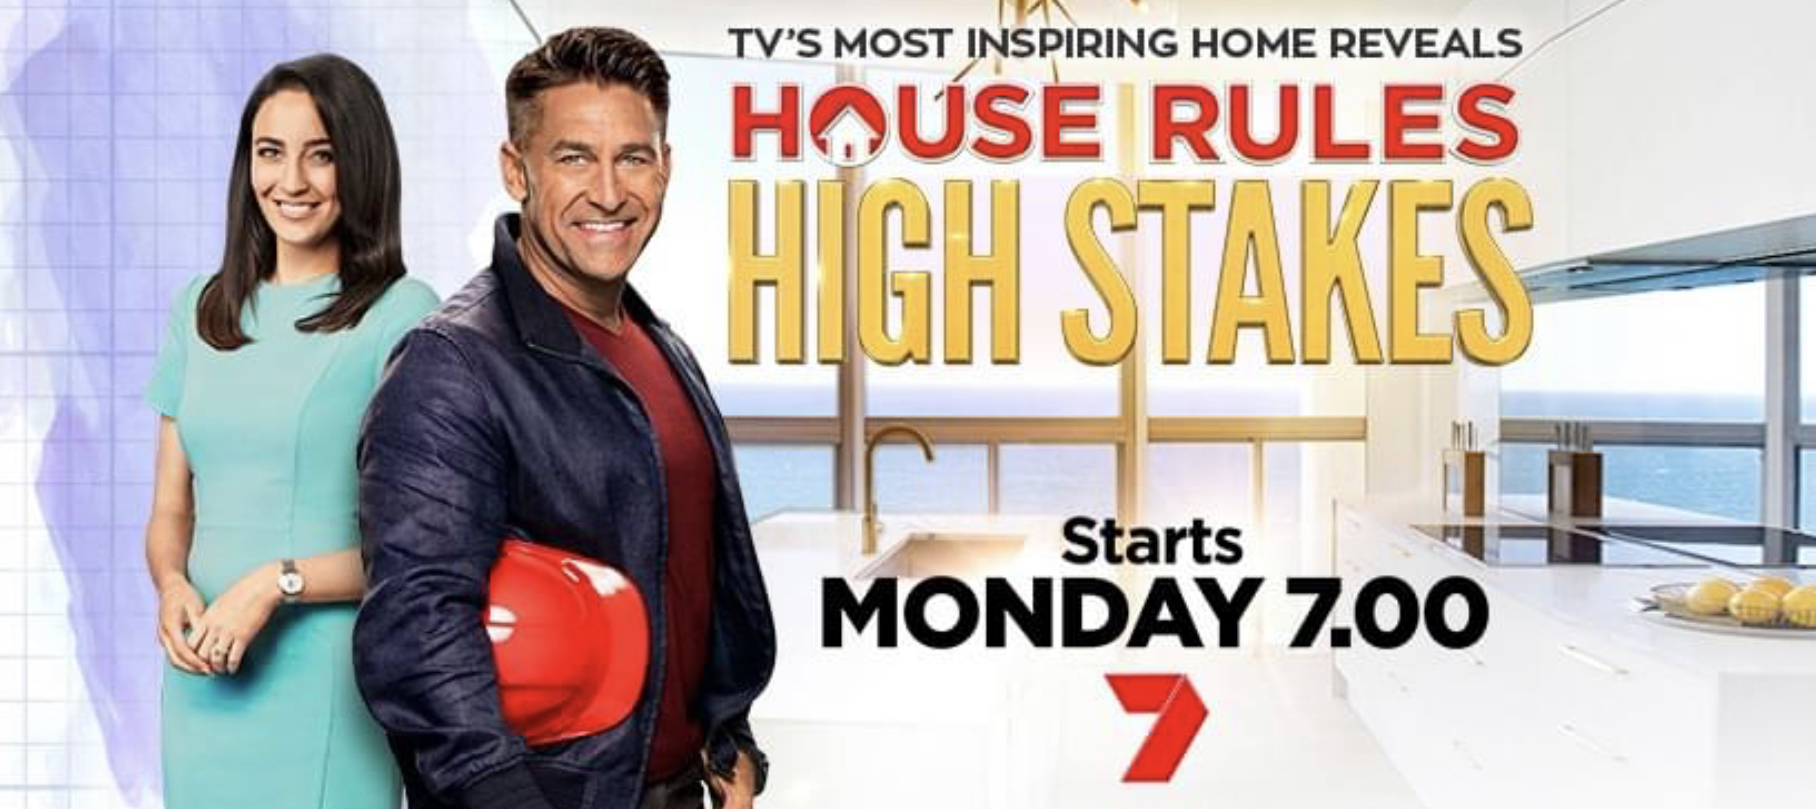 House Rules starts Mon